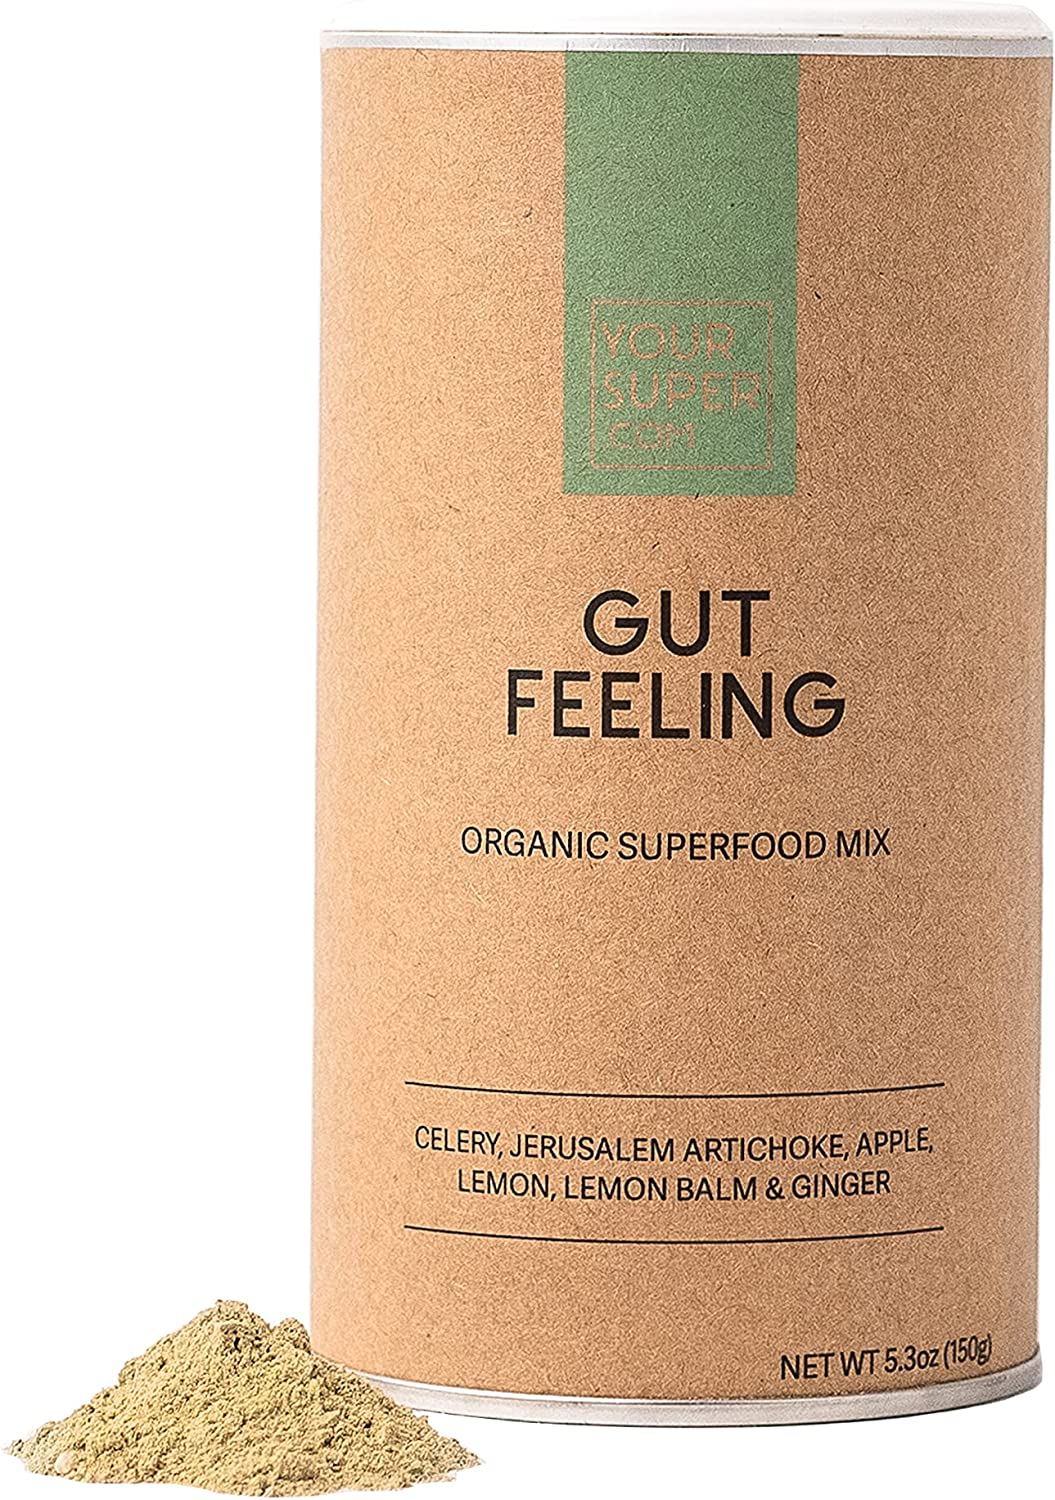 Your Super Gut Feeling Superfood Powder - Instant Celery Juice Powder, Prebiotics, Gut Health - Contains Digestive Enzymes, Dietary Fiber - 30 Servings